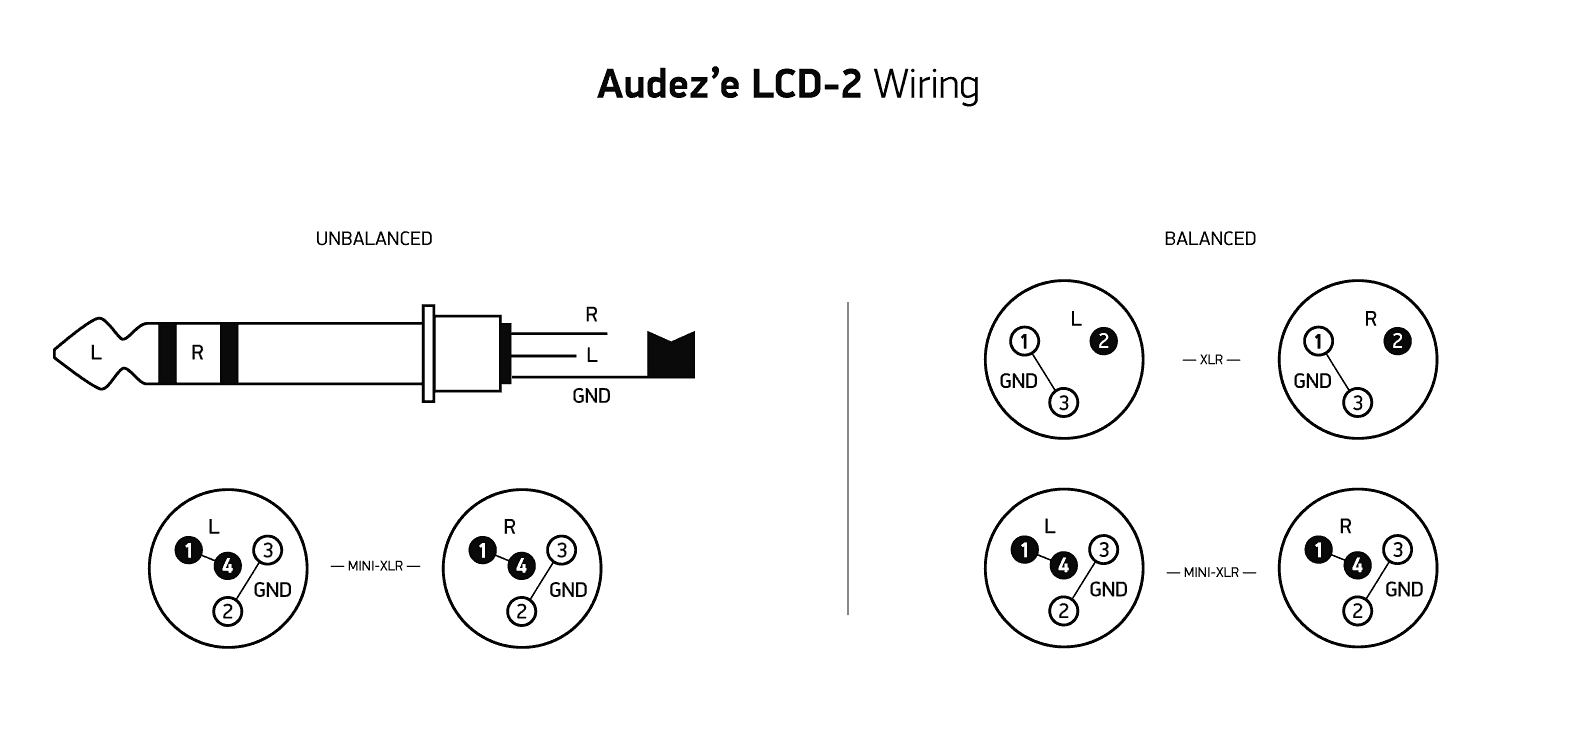 Audeze 4 Pin Mini XLR To TRS Wiring Help Head Fi Org Inside ... on